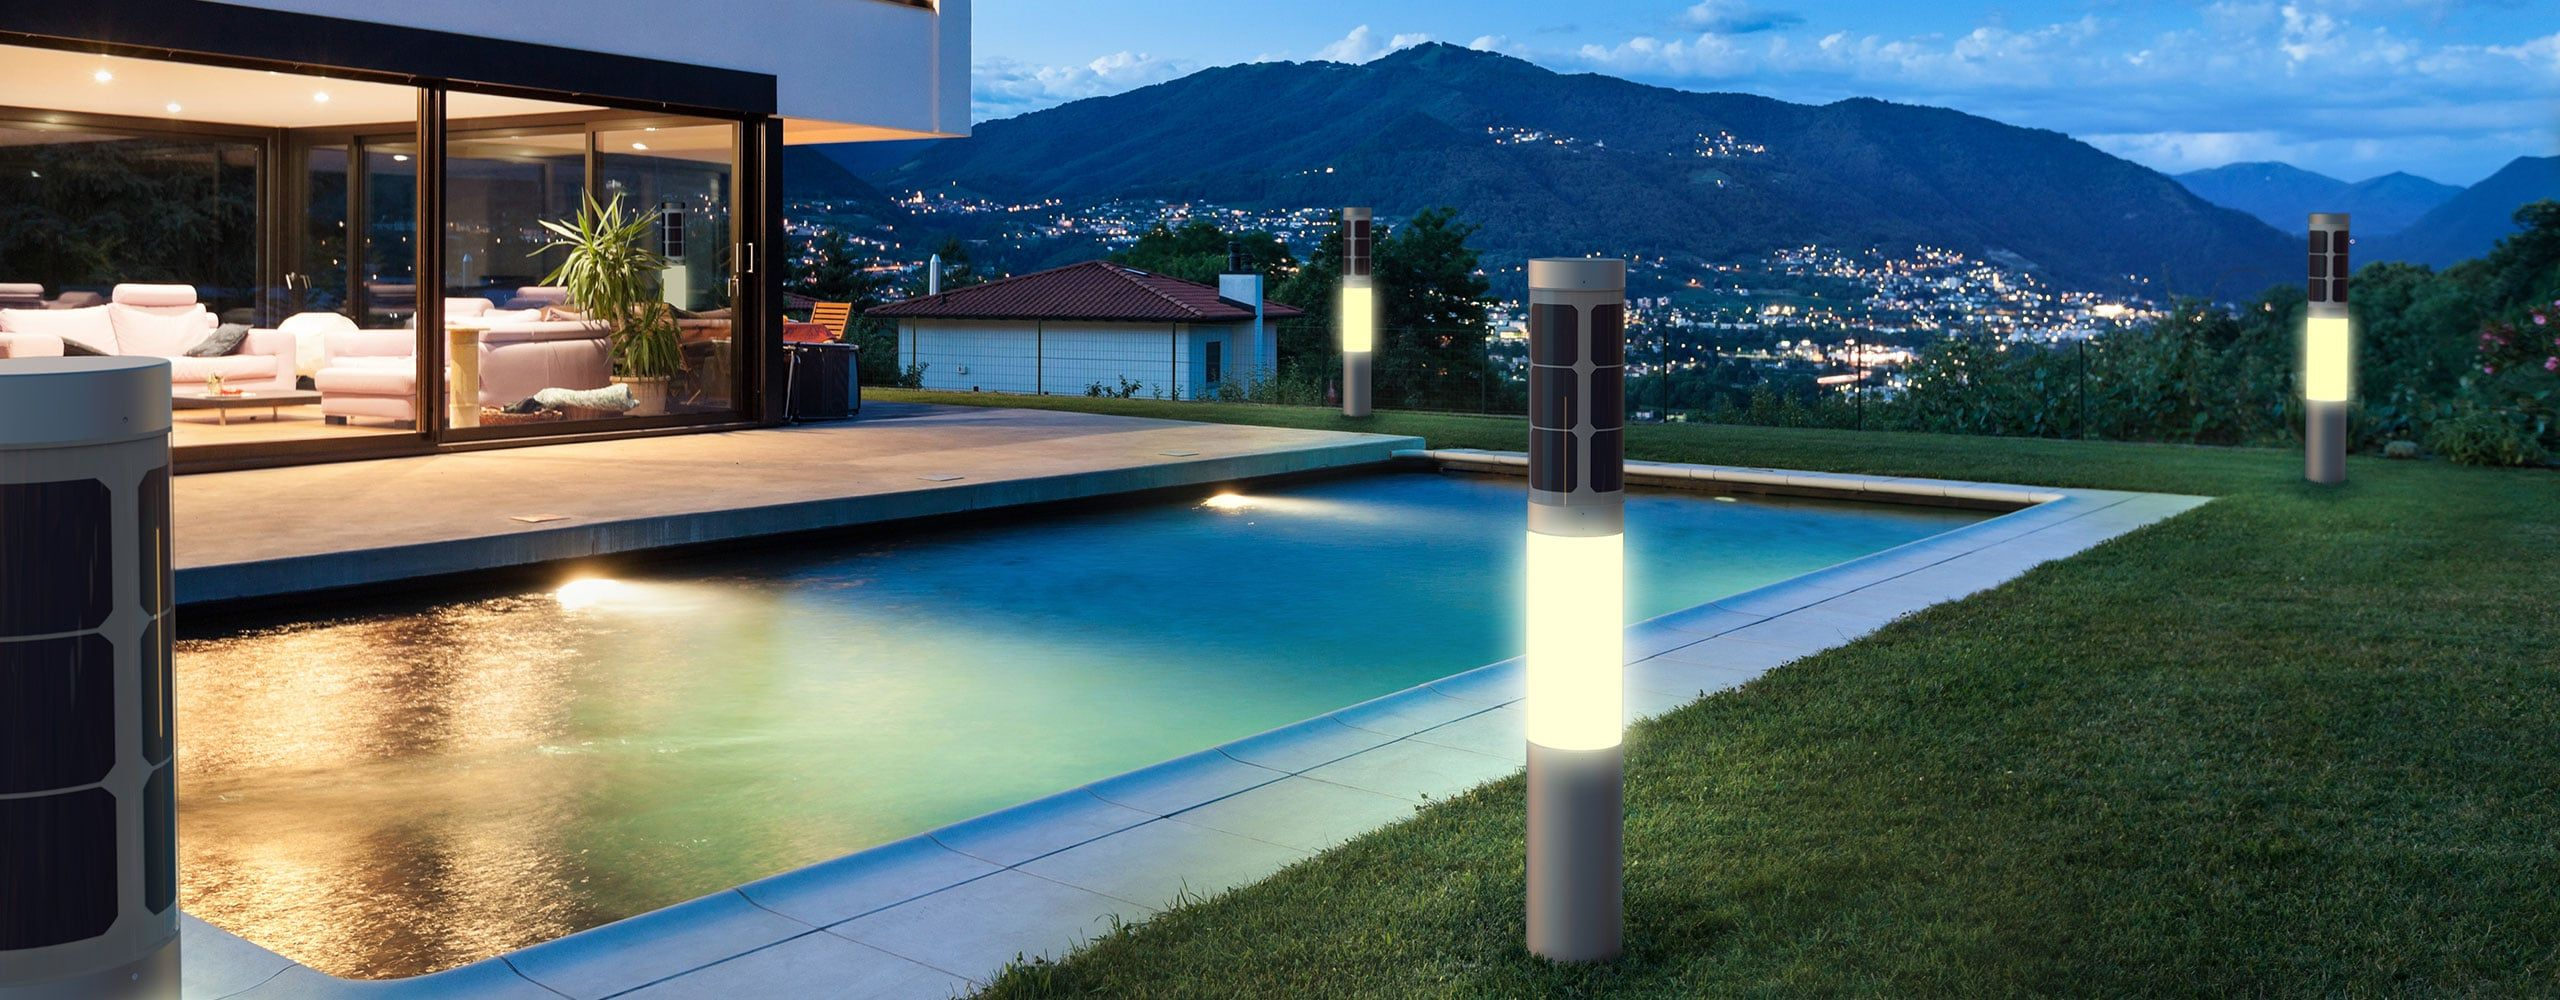 Global Outdoor Led Smart Lighting Solution Market Size Status And